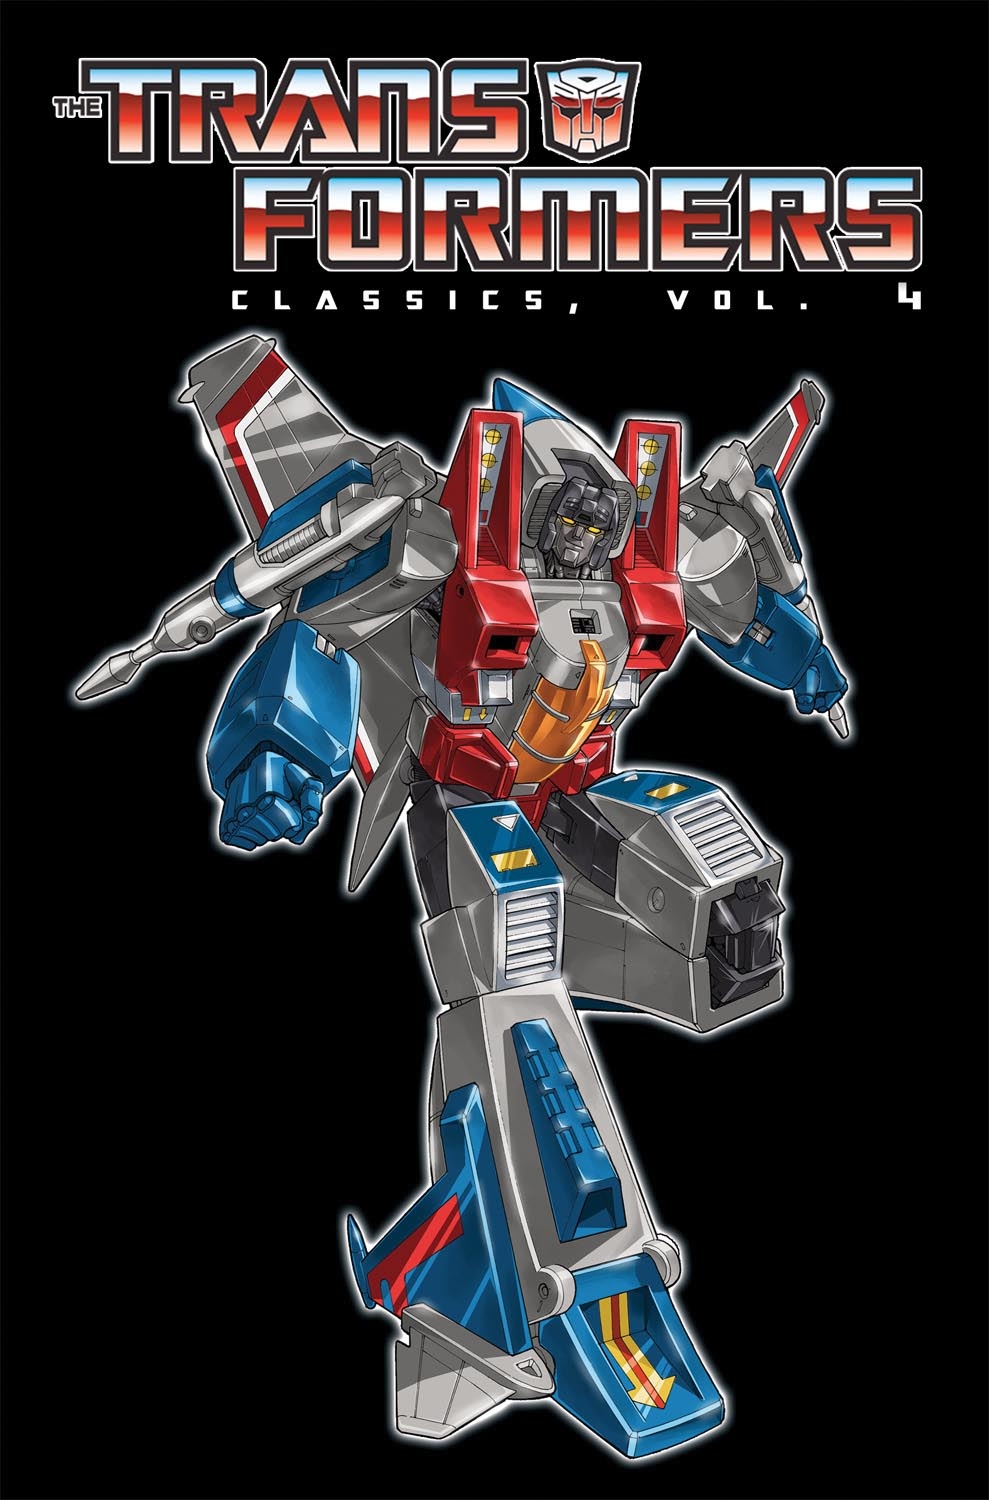 Transformers Classics Vol. 4